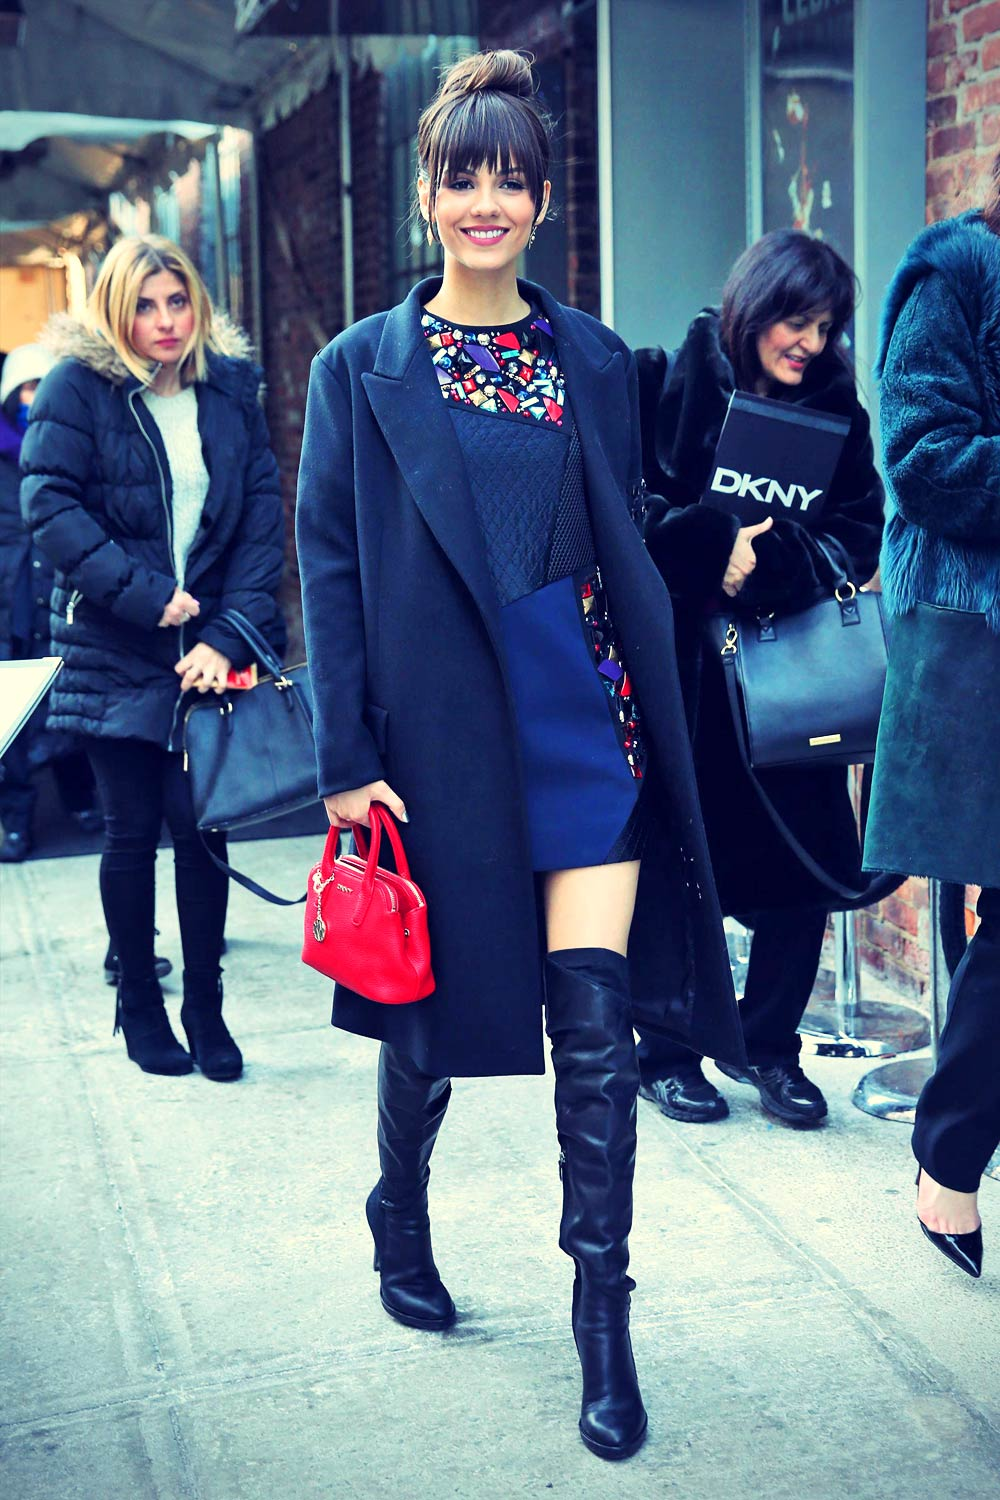 Victoria Justice attends DKNY Fashion Show